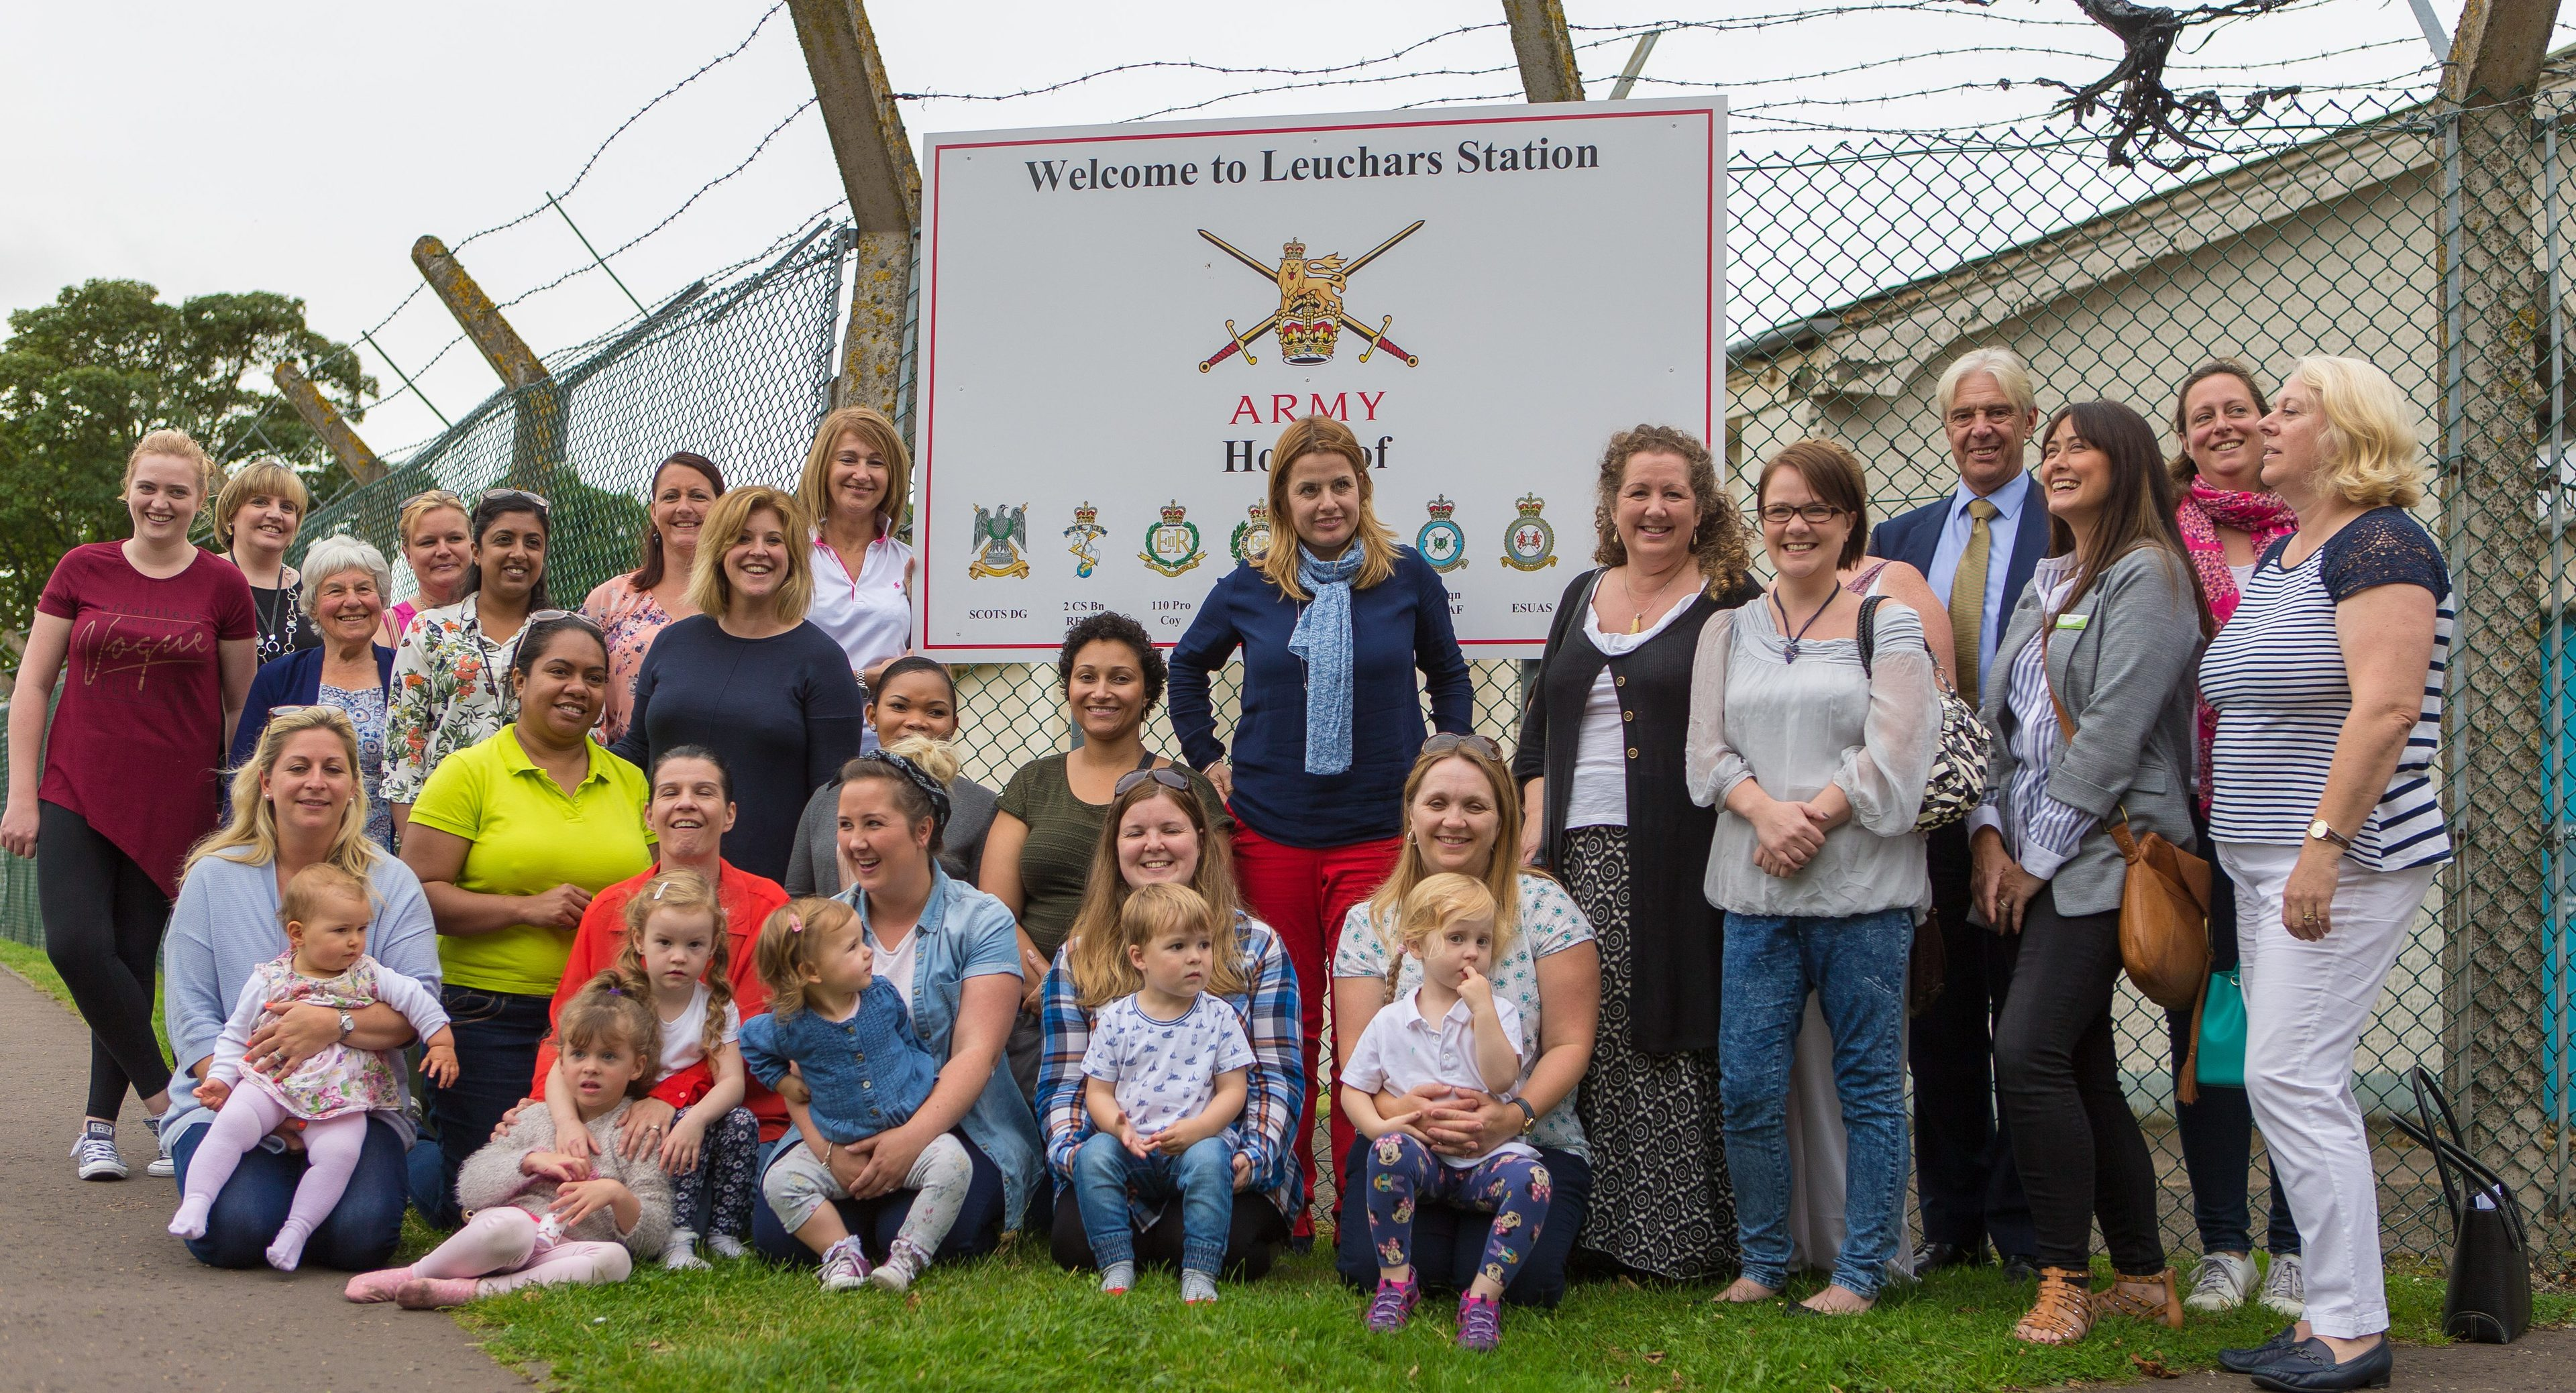 Recruit for Spouses launches at Leuchars army base by founder Heledd Kendrick